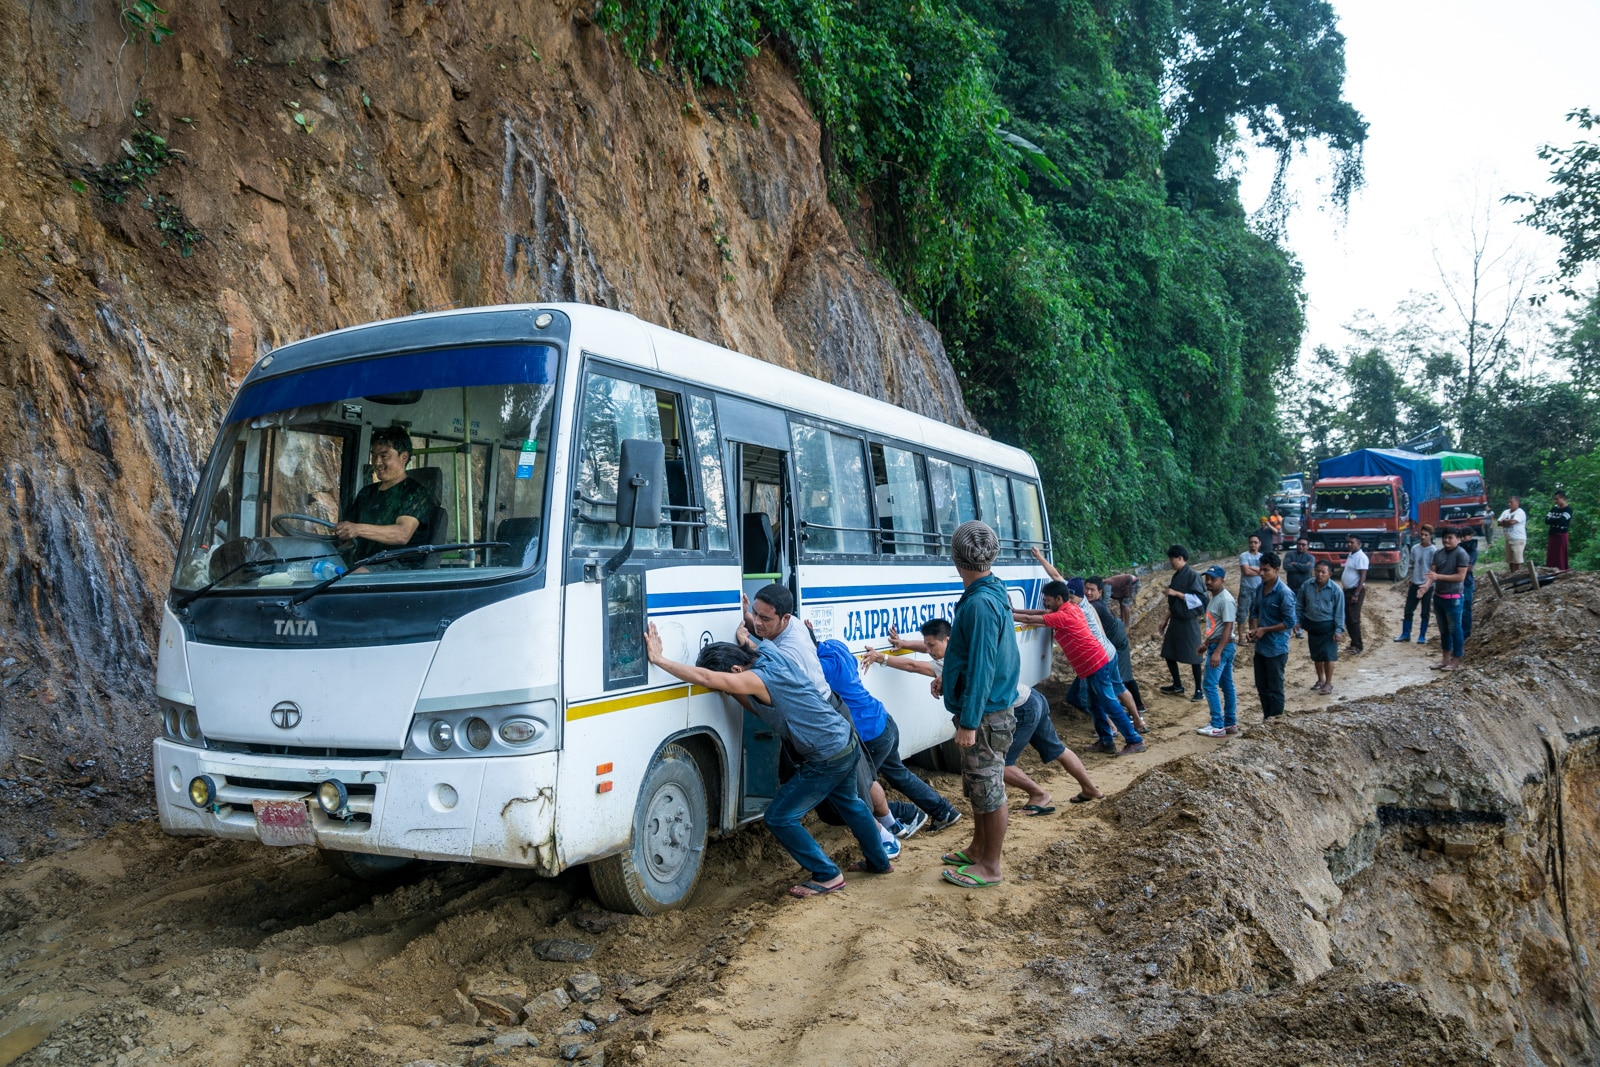 Off the beaten track Bhutan - Bus stuck in the mud - Lost With Purpose travel blog